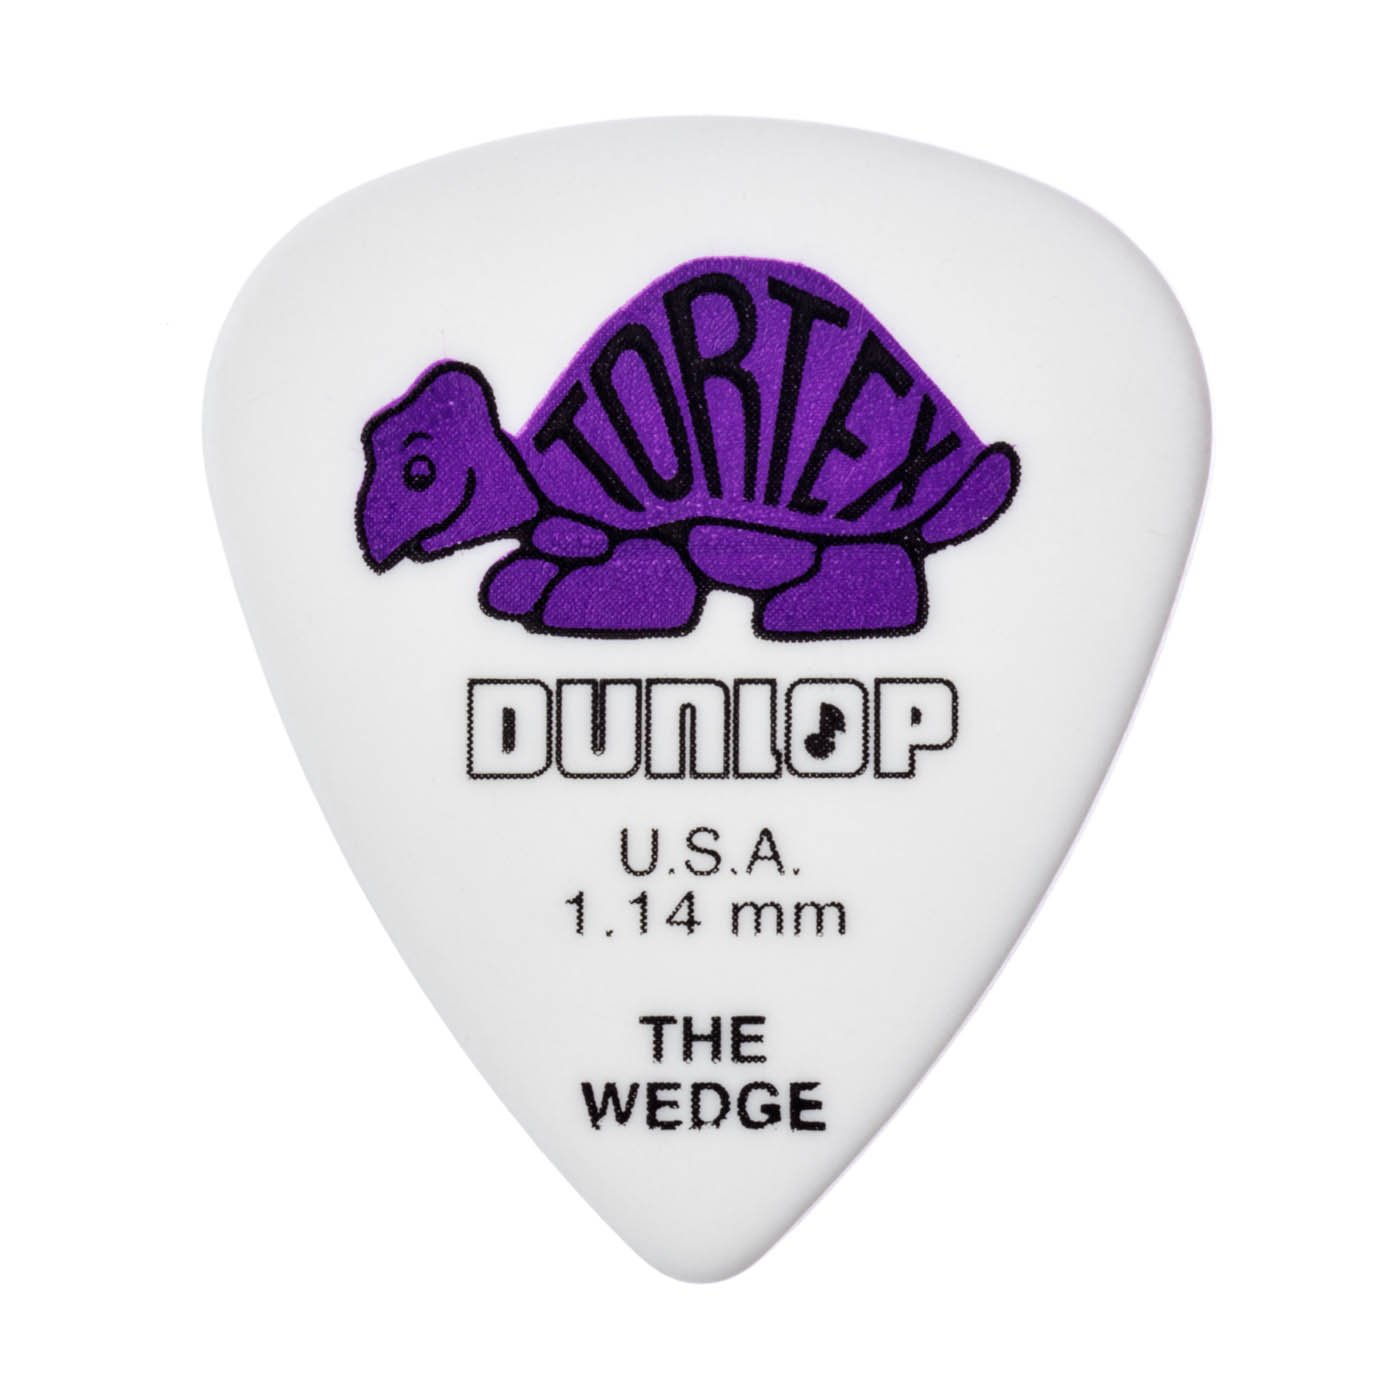 DUNLOP TORTEX WEDGE 1.14 PICKS 12pk